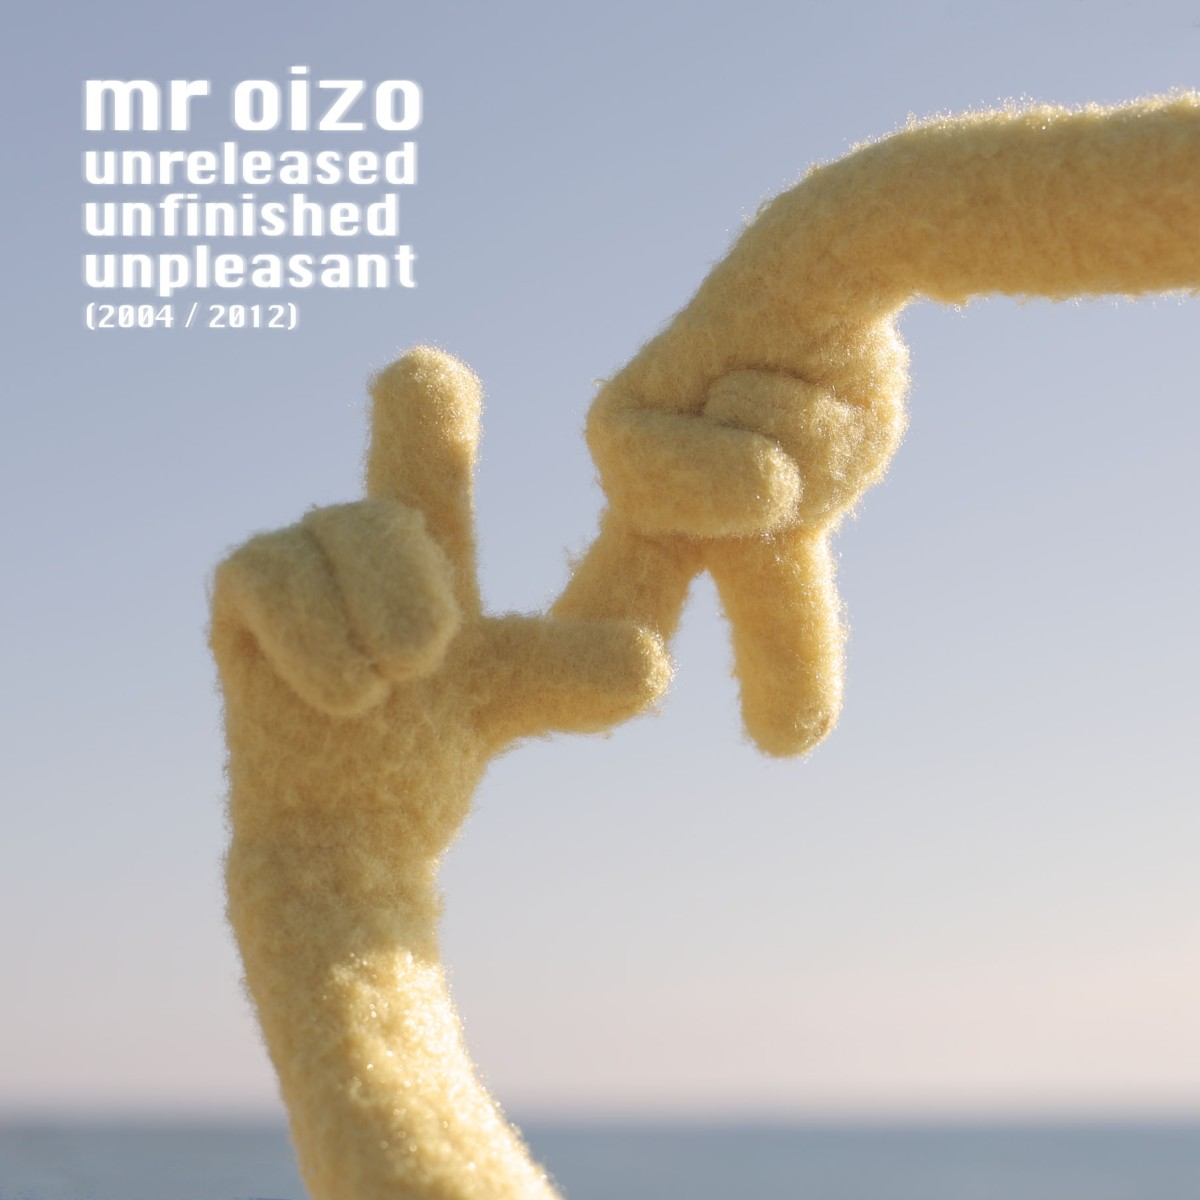 Mr. Oizo - Unreleased Unfinished Unpleasant Pack | 11 Free Download